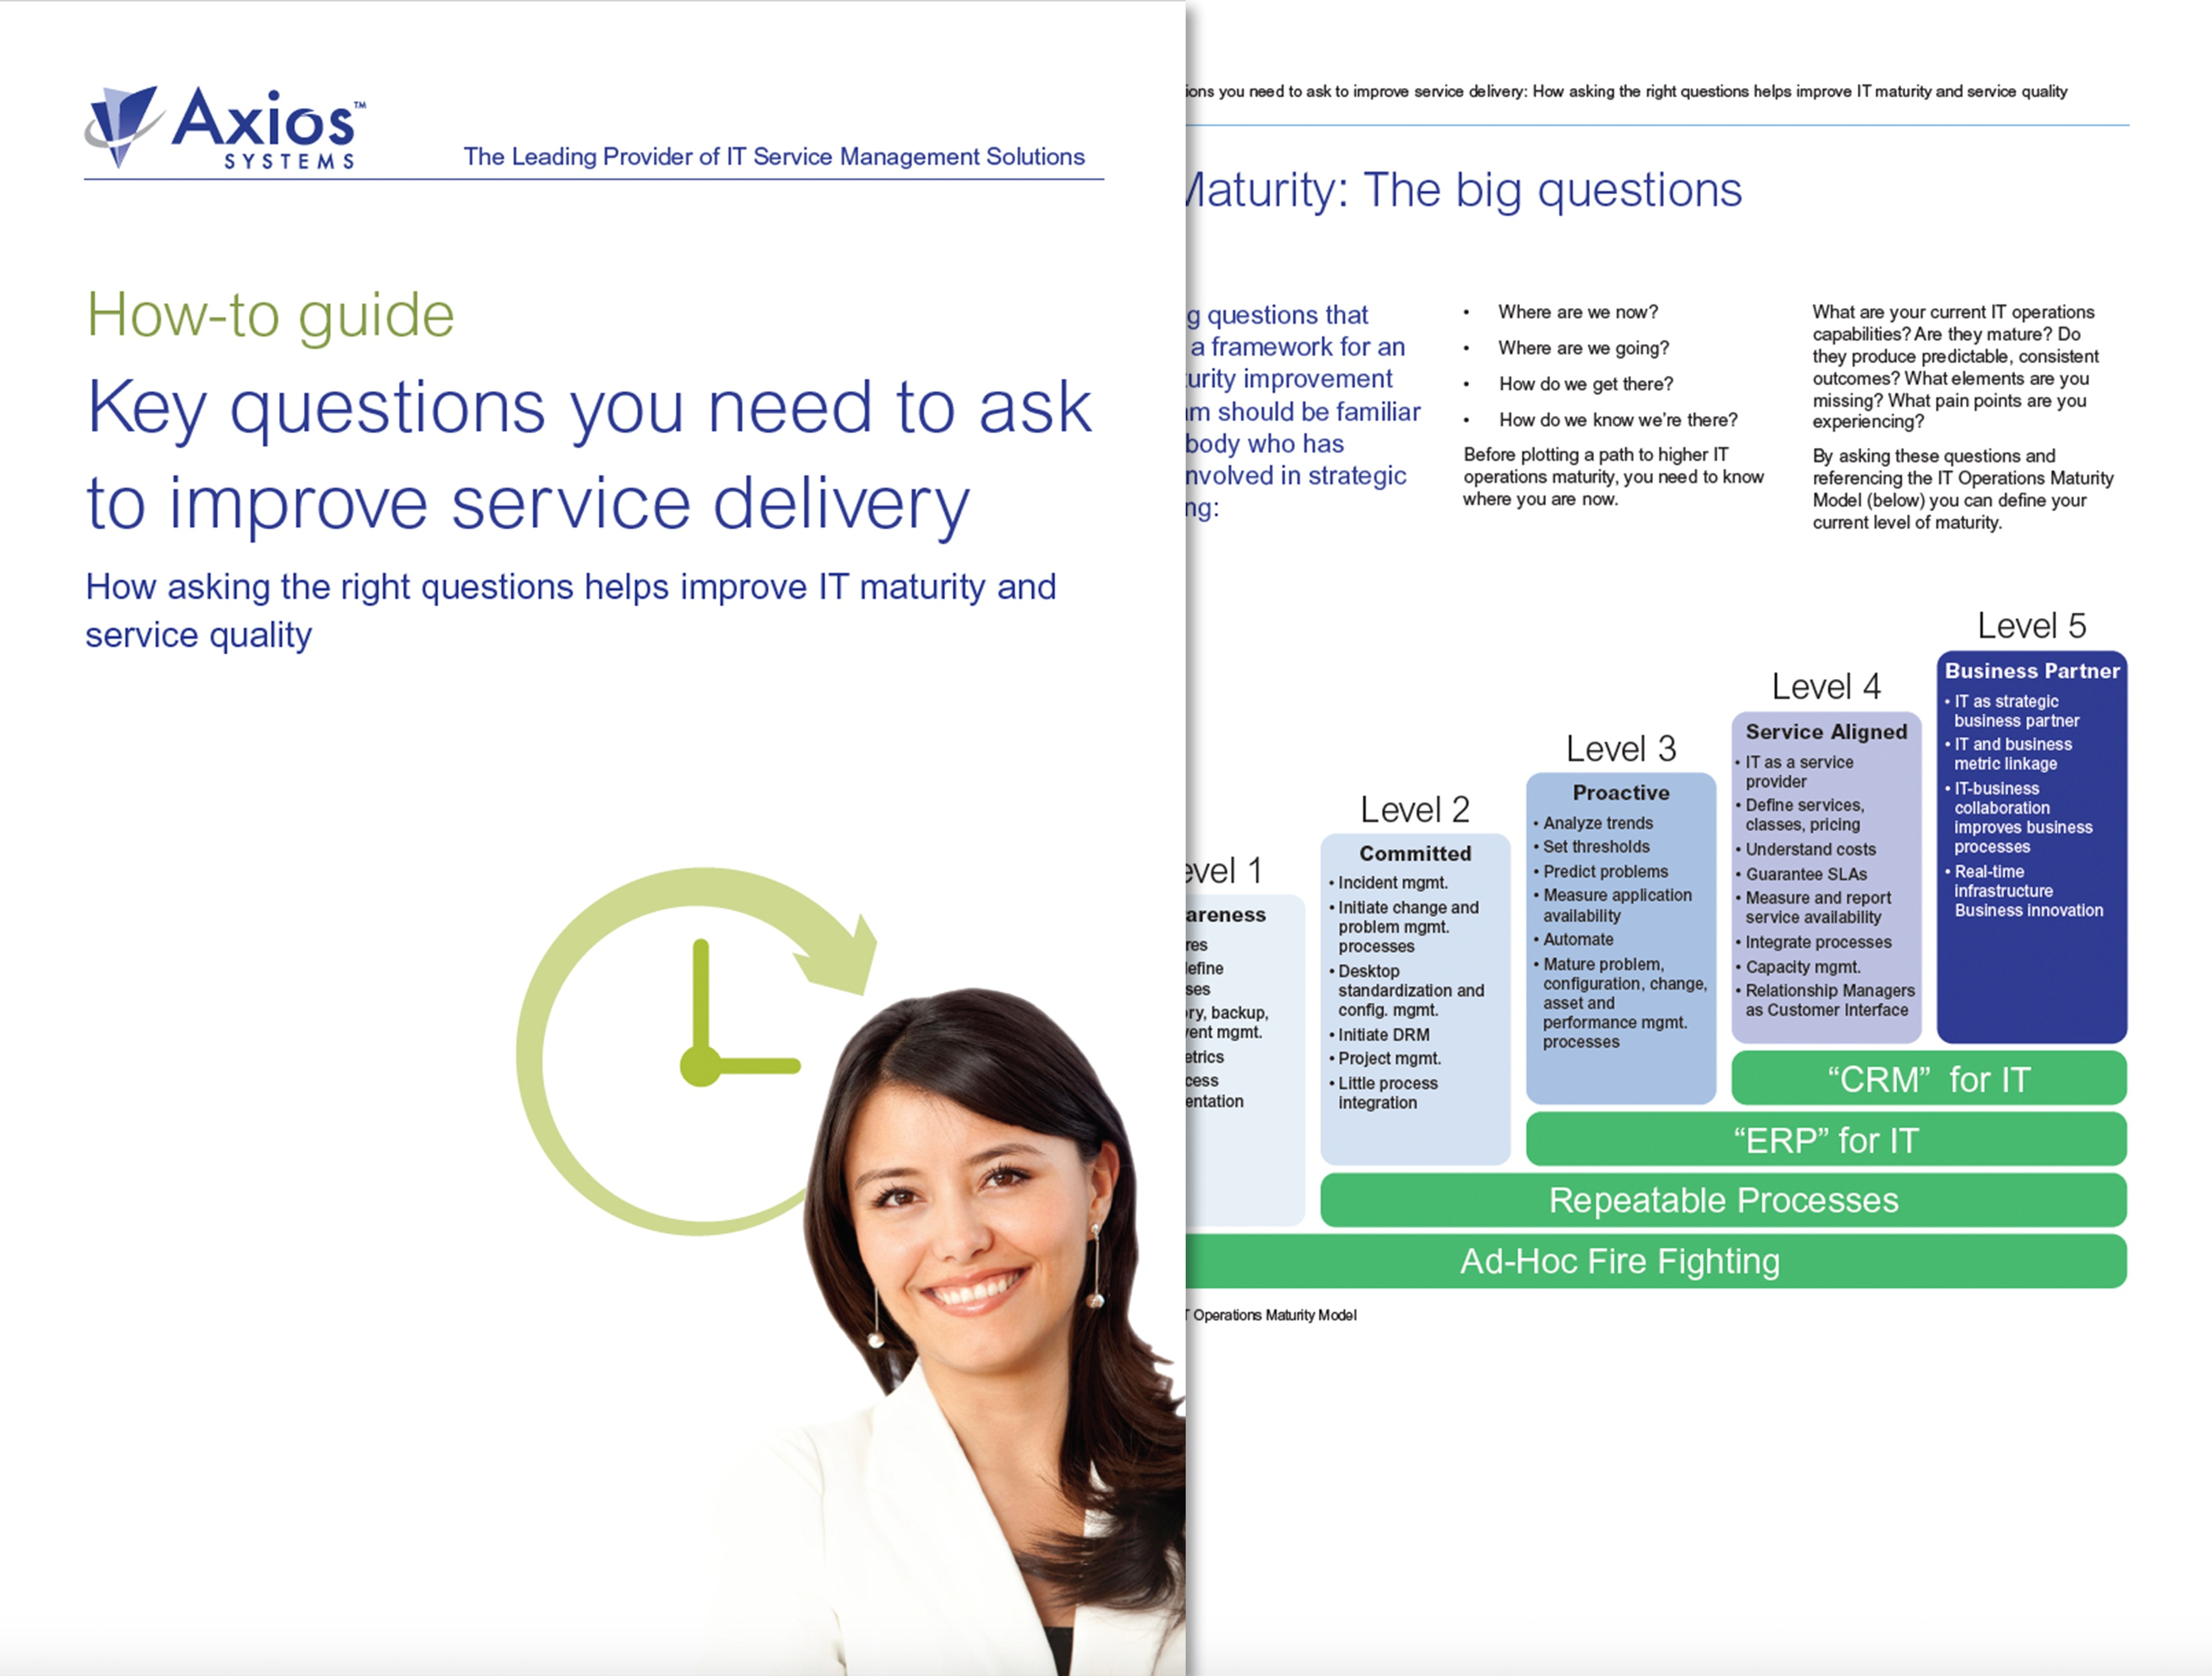 IT whitepaper: Key questions you need to ask to improve IT service delivery